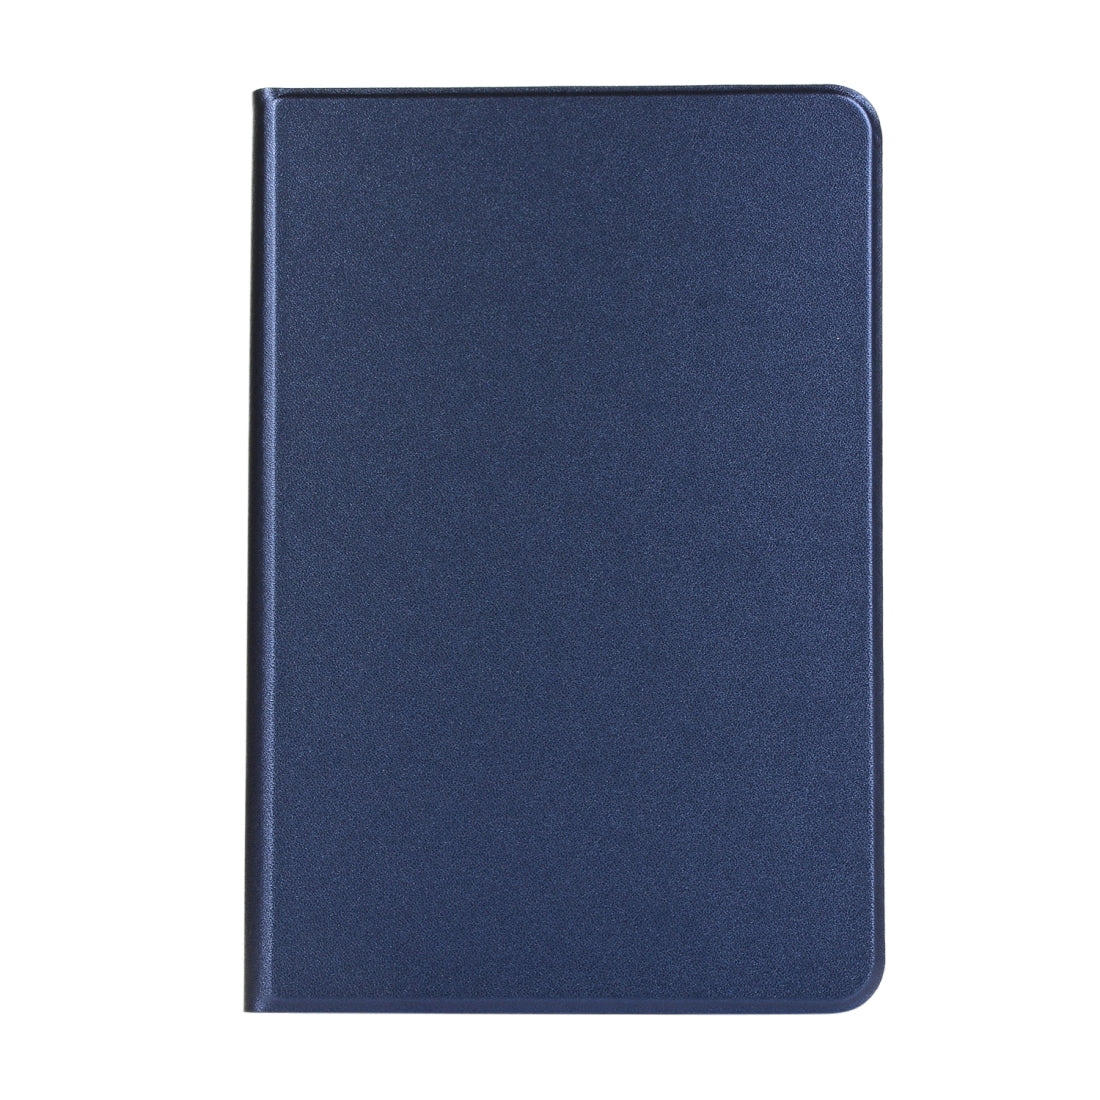 Universal Spring Texture TPU Protective Case for iPad Mini 1 / 2 / 3, with Holder (Dark Blue)